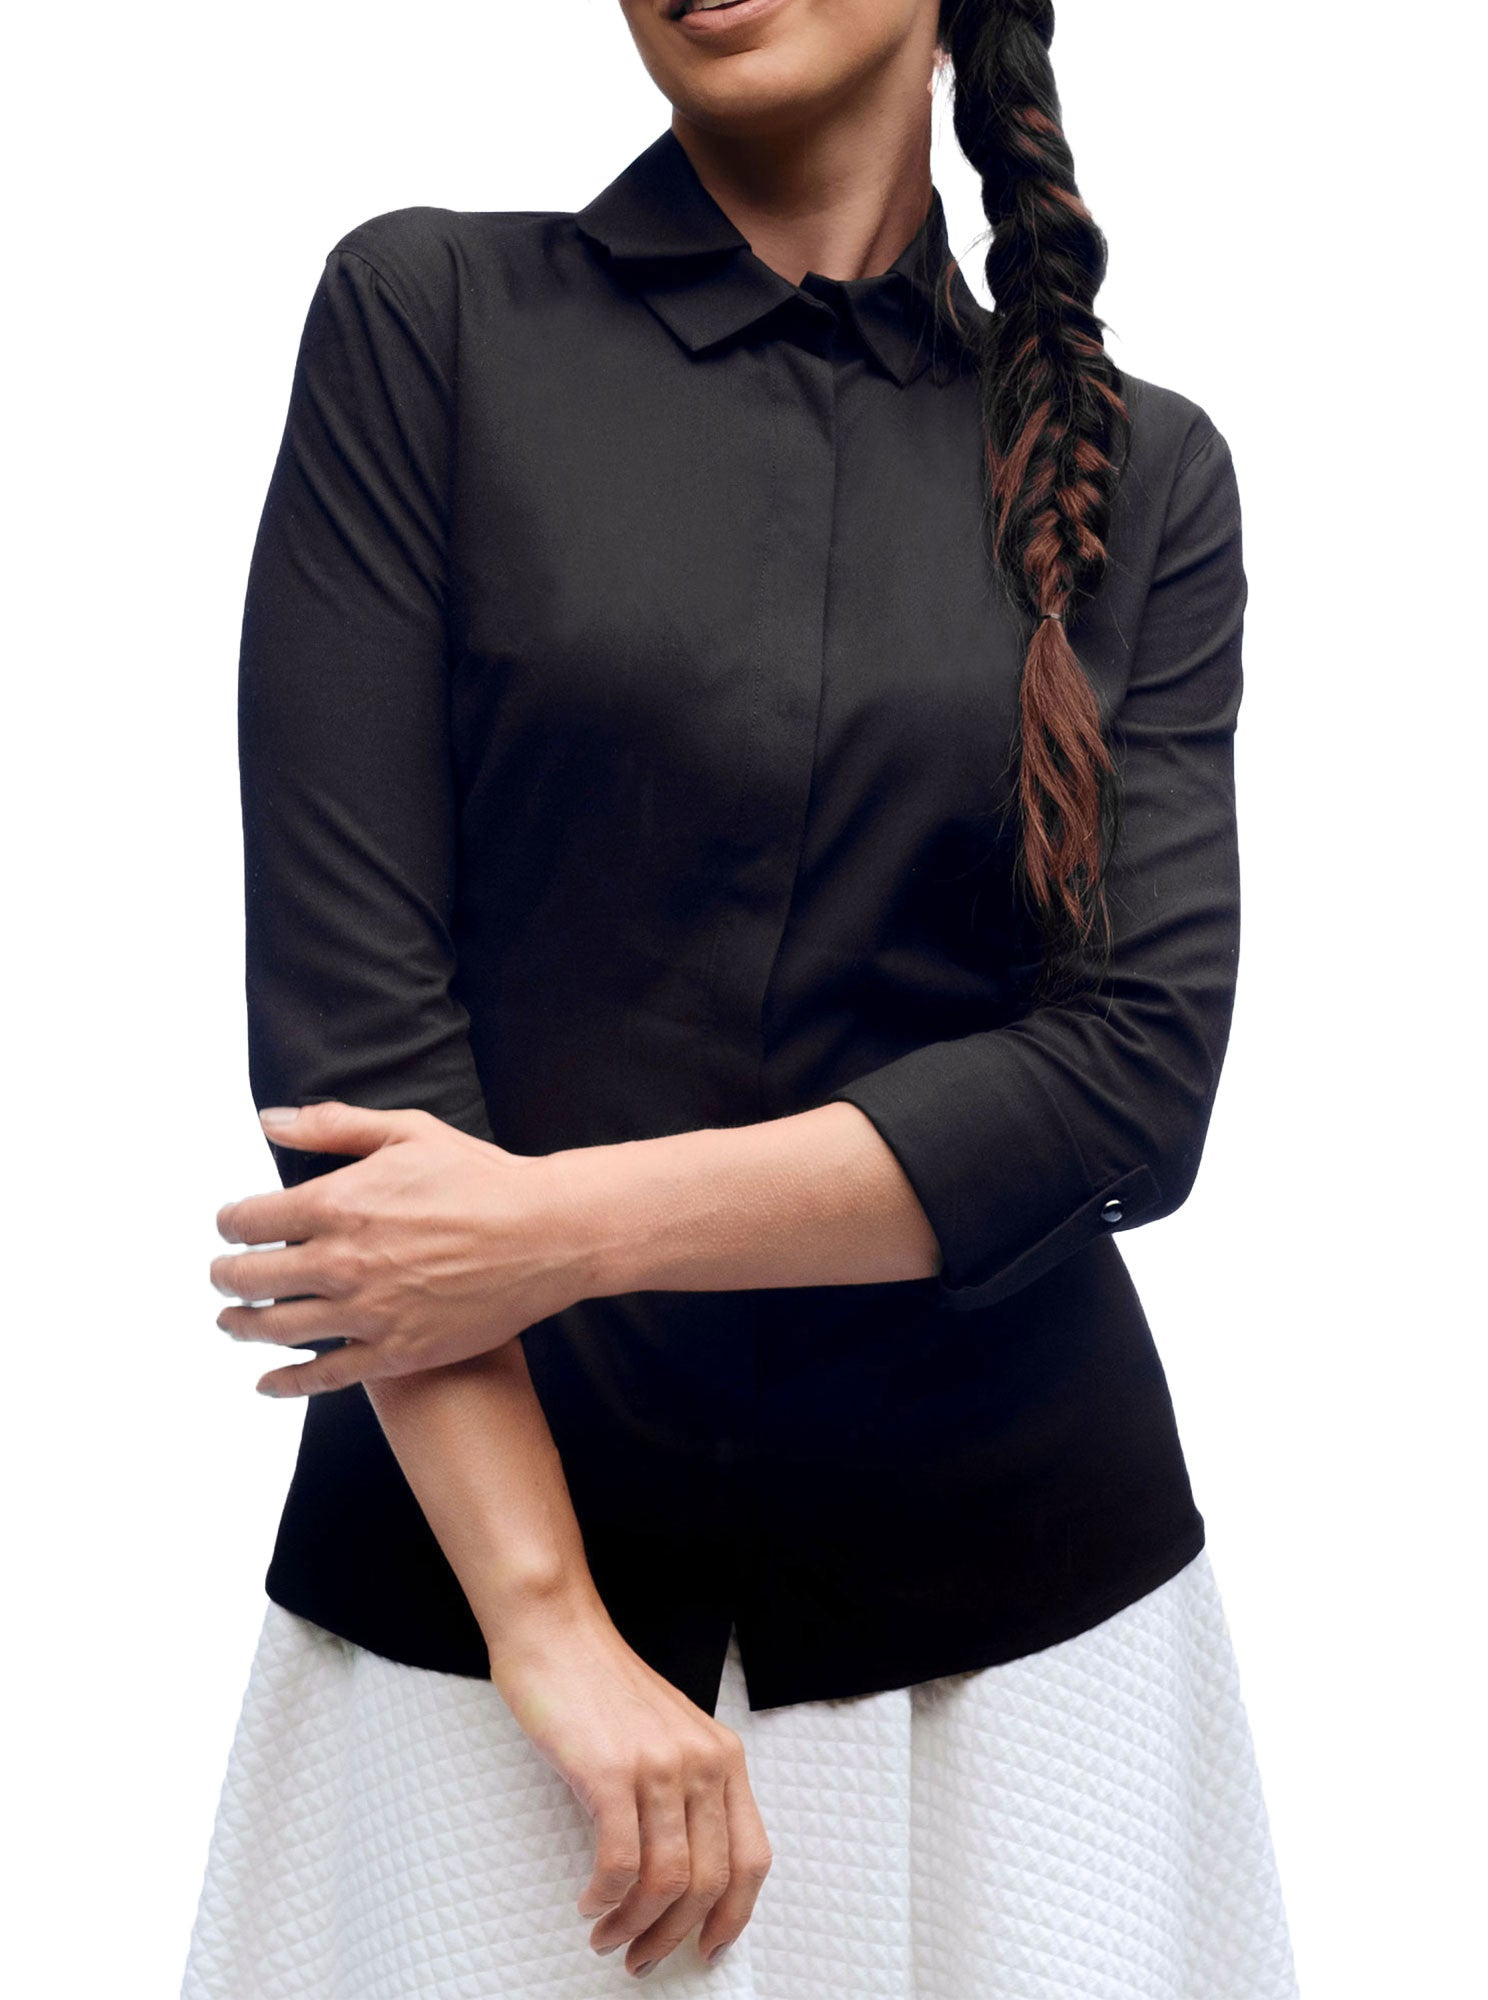 ODER Bamboo Black Shirt (Ajustable Sleeves)